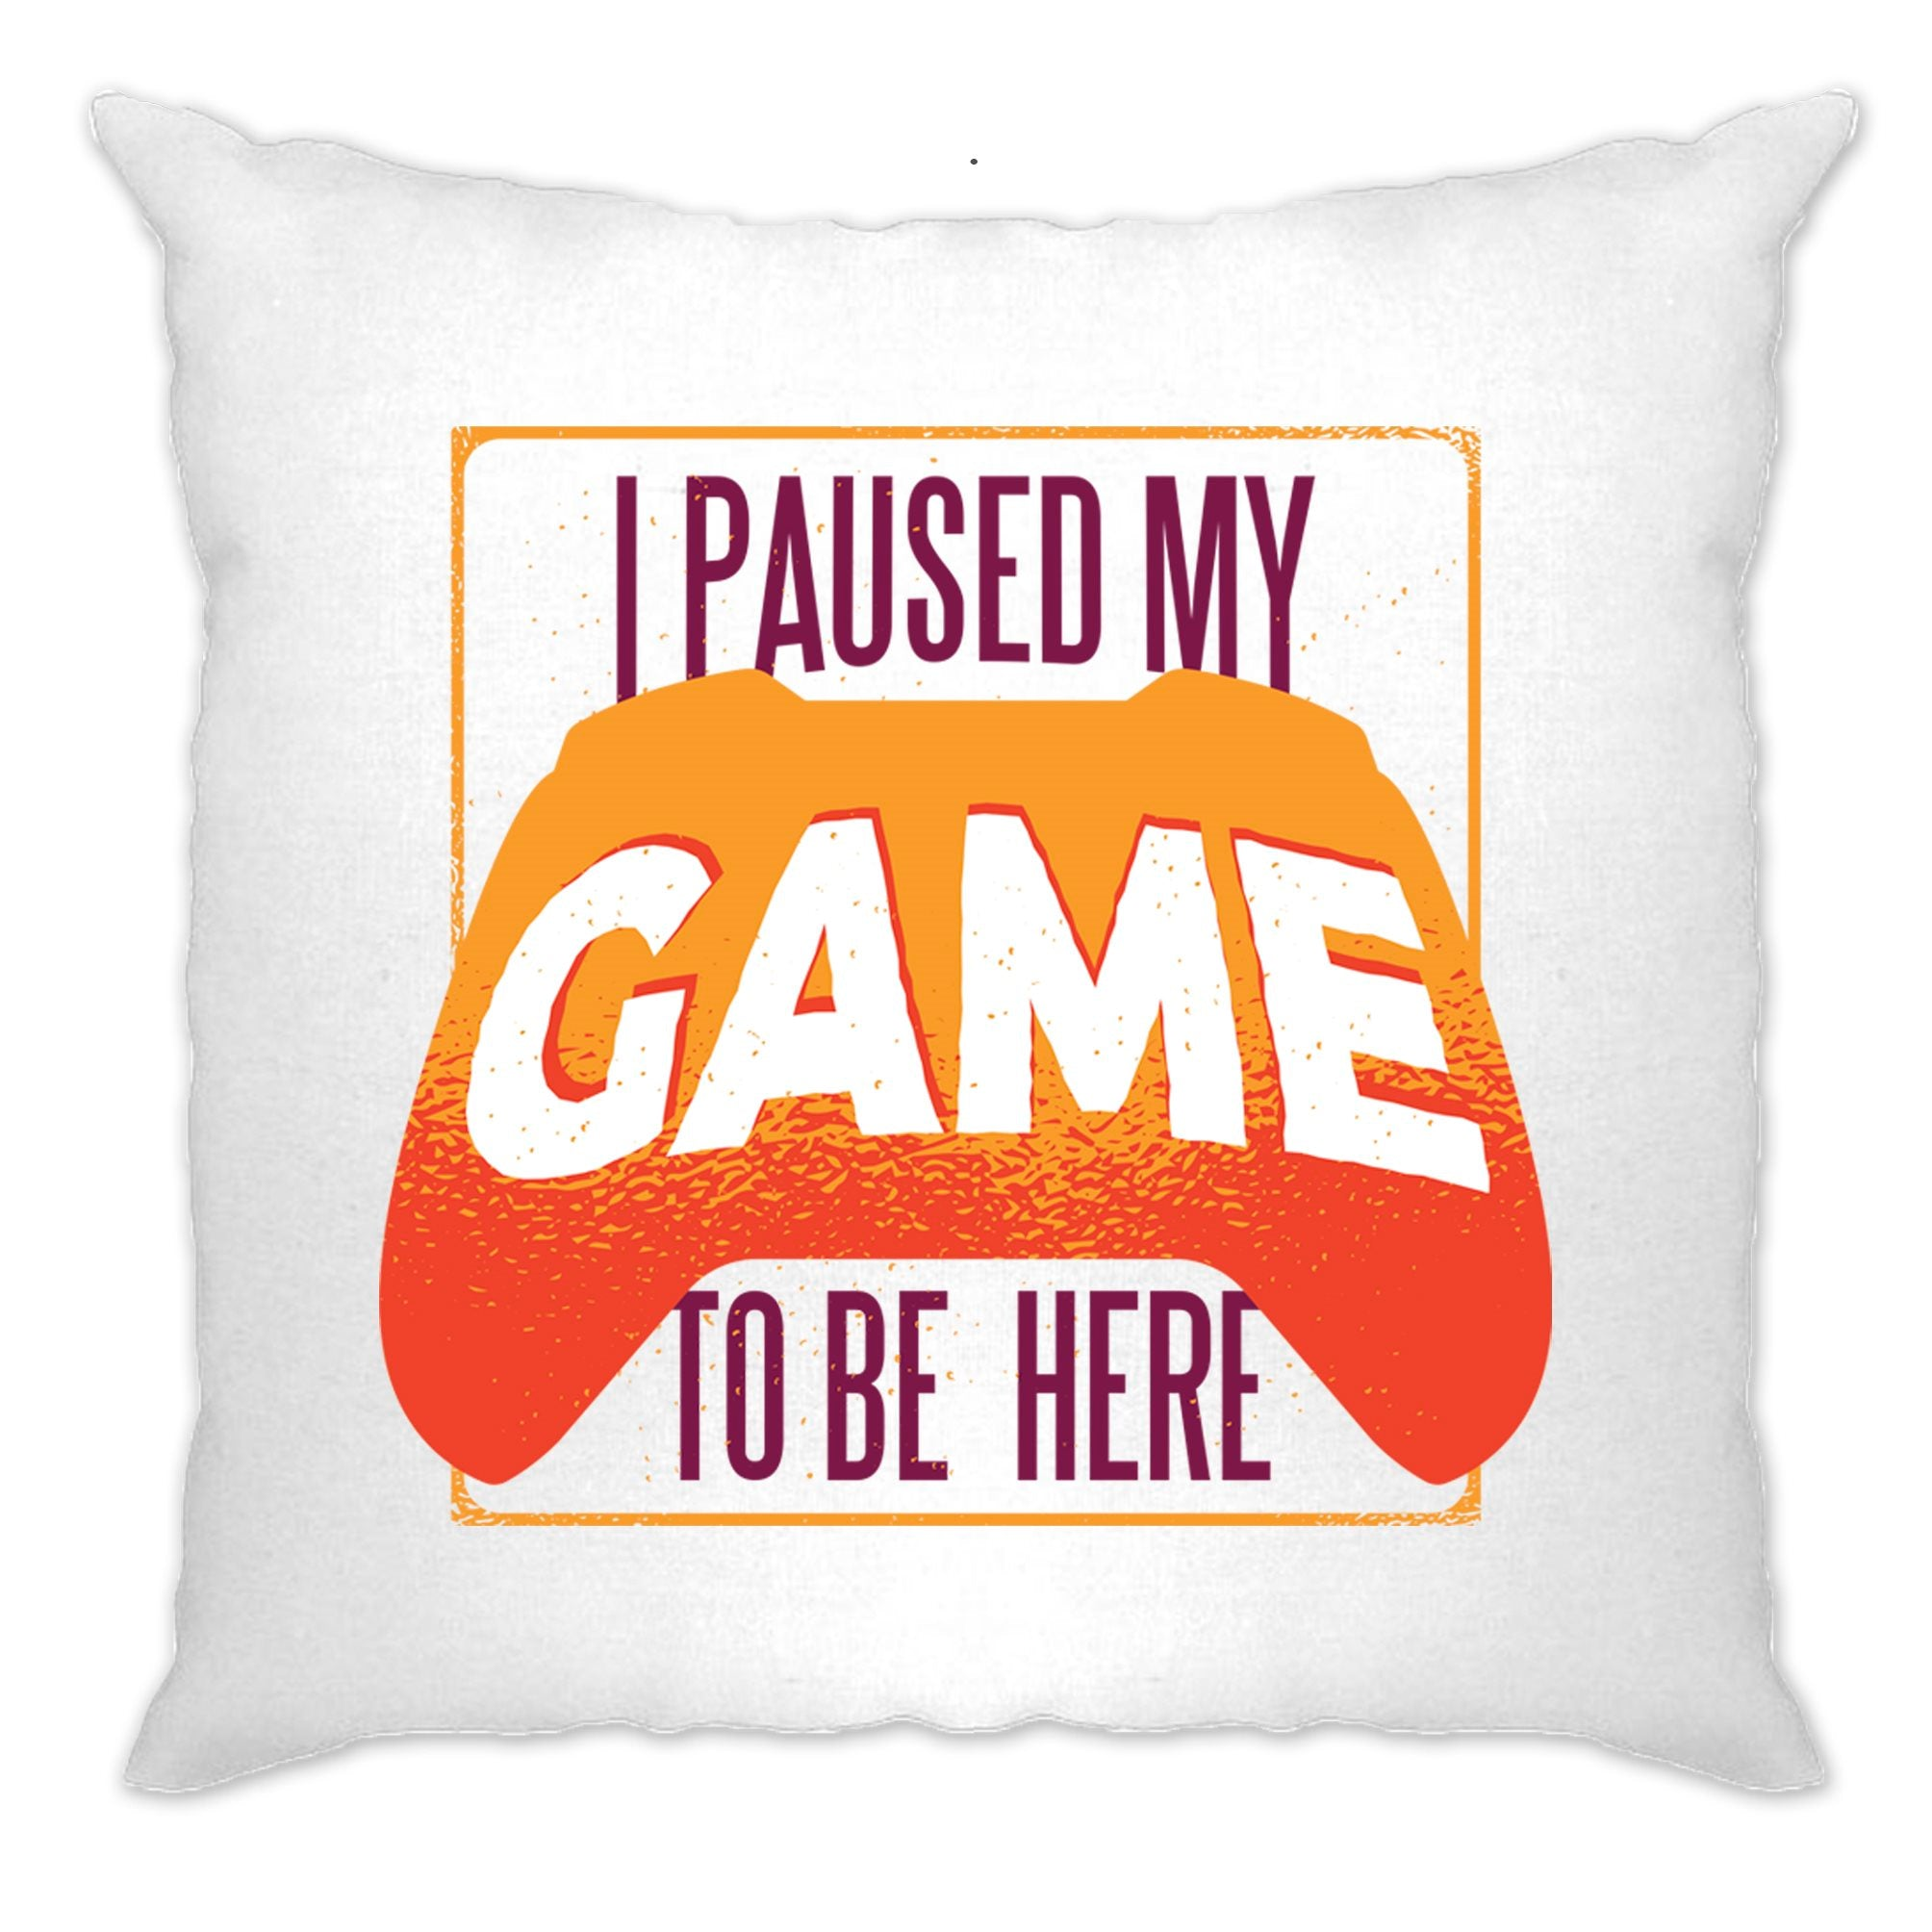 Gaming Cushion Cover I Paused My Game For This